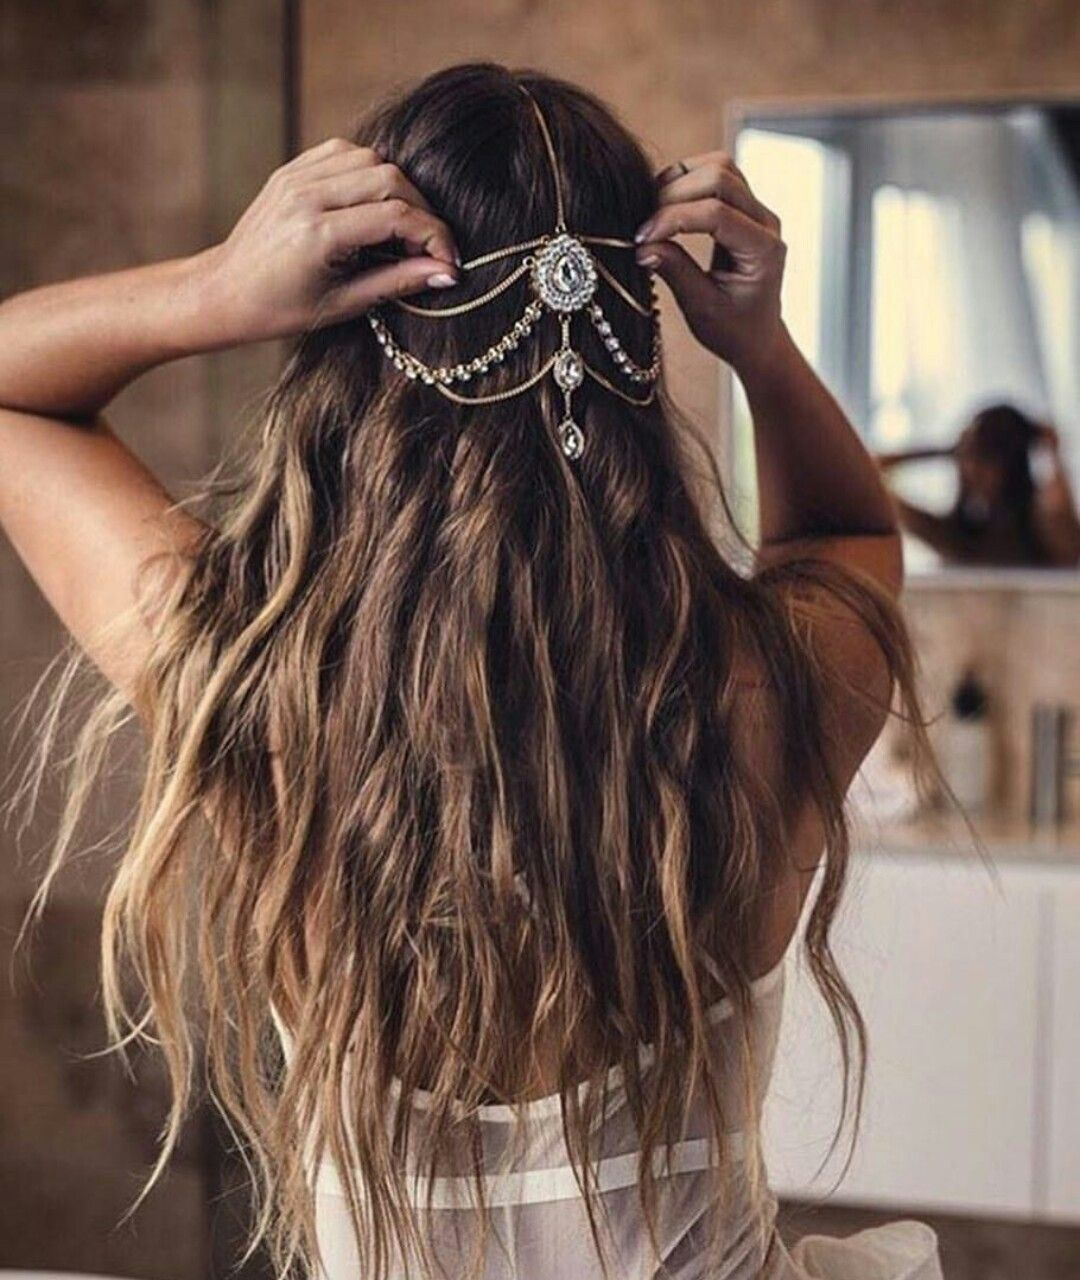 Wedding Hairstyles Boho: » Boho Bride » Floral Crowns » Long Waves » Feather